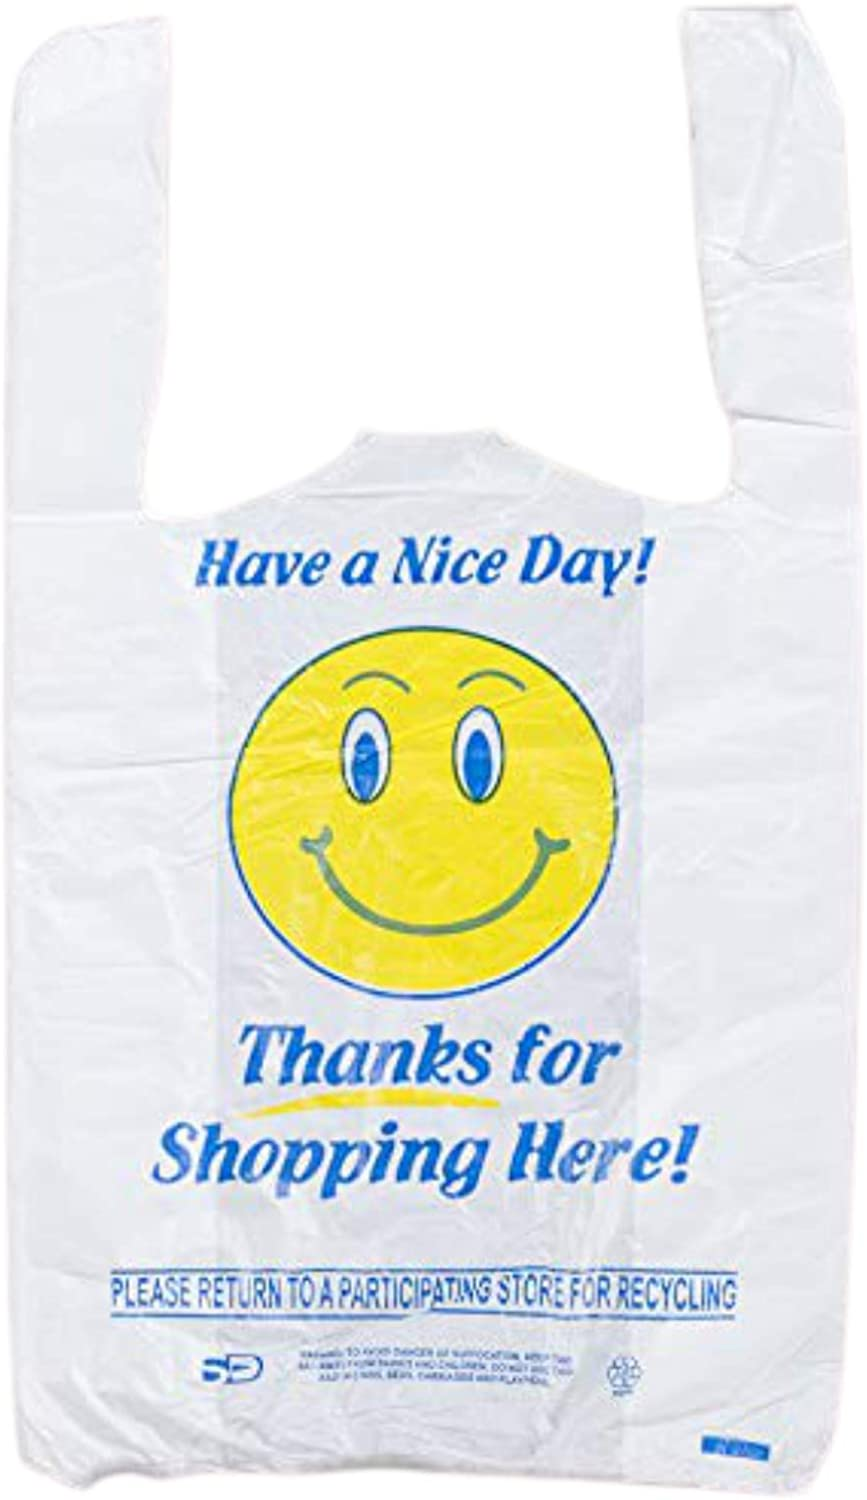 Pine Shopping Bags - Happy face Plastic Bags – Reusable Bags for Shopping, Grocery - T-shirt Plastic Bags | Heavy Duty Gift Carrier Market Bags | white | Pack of 95